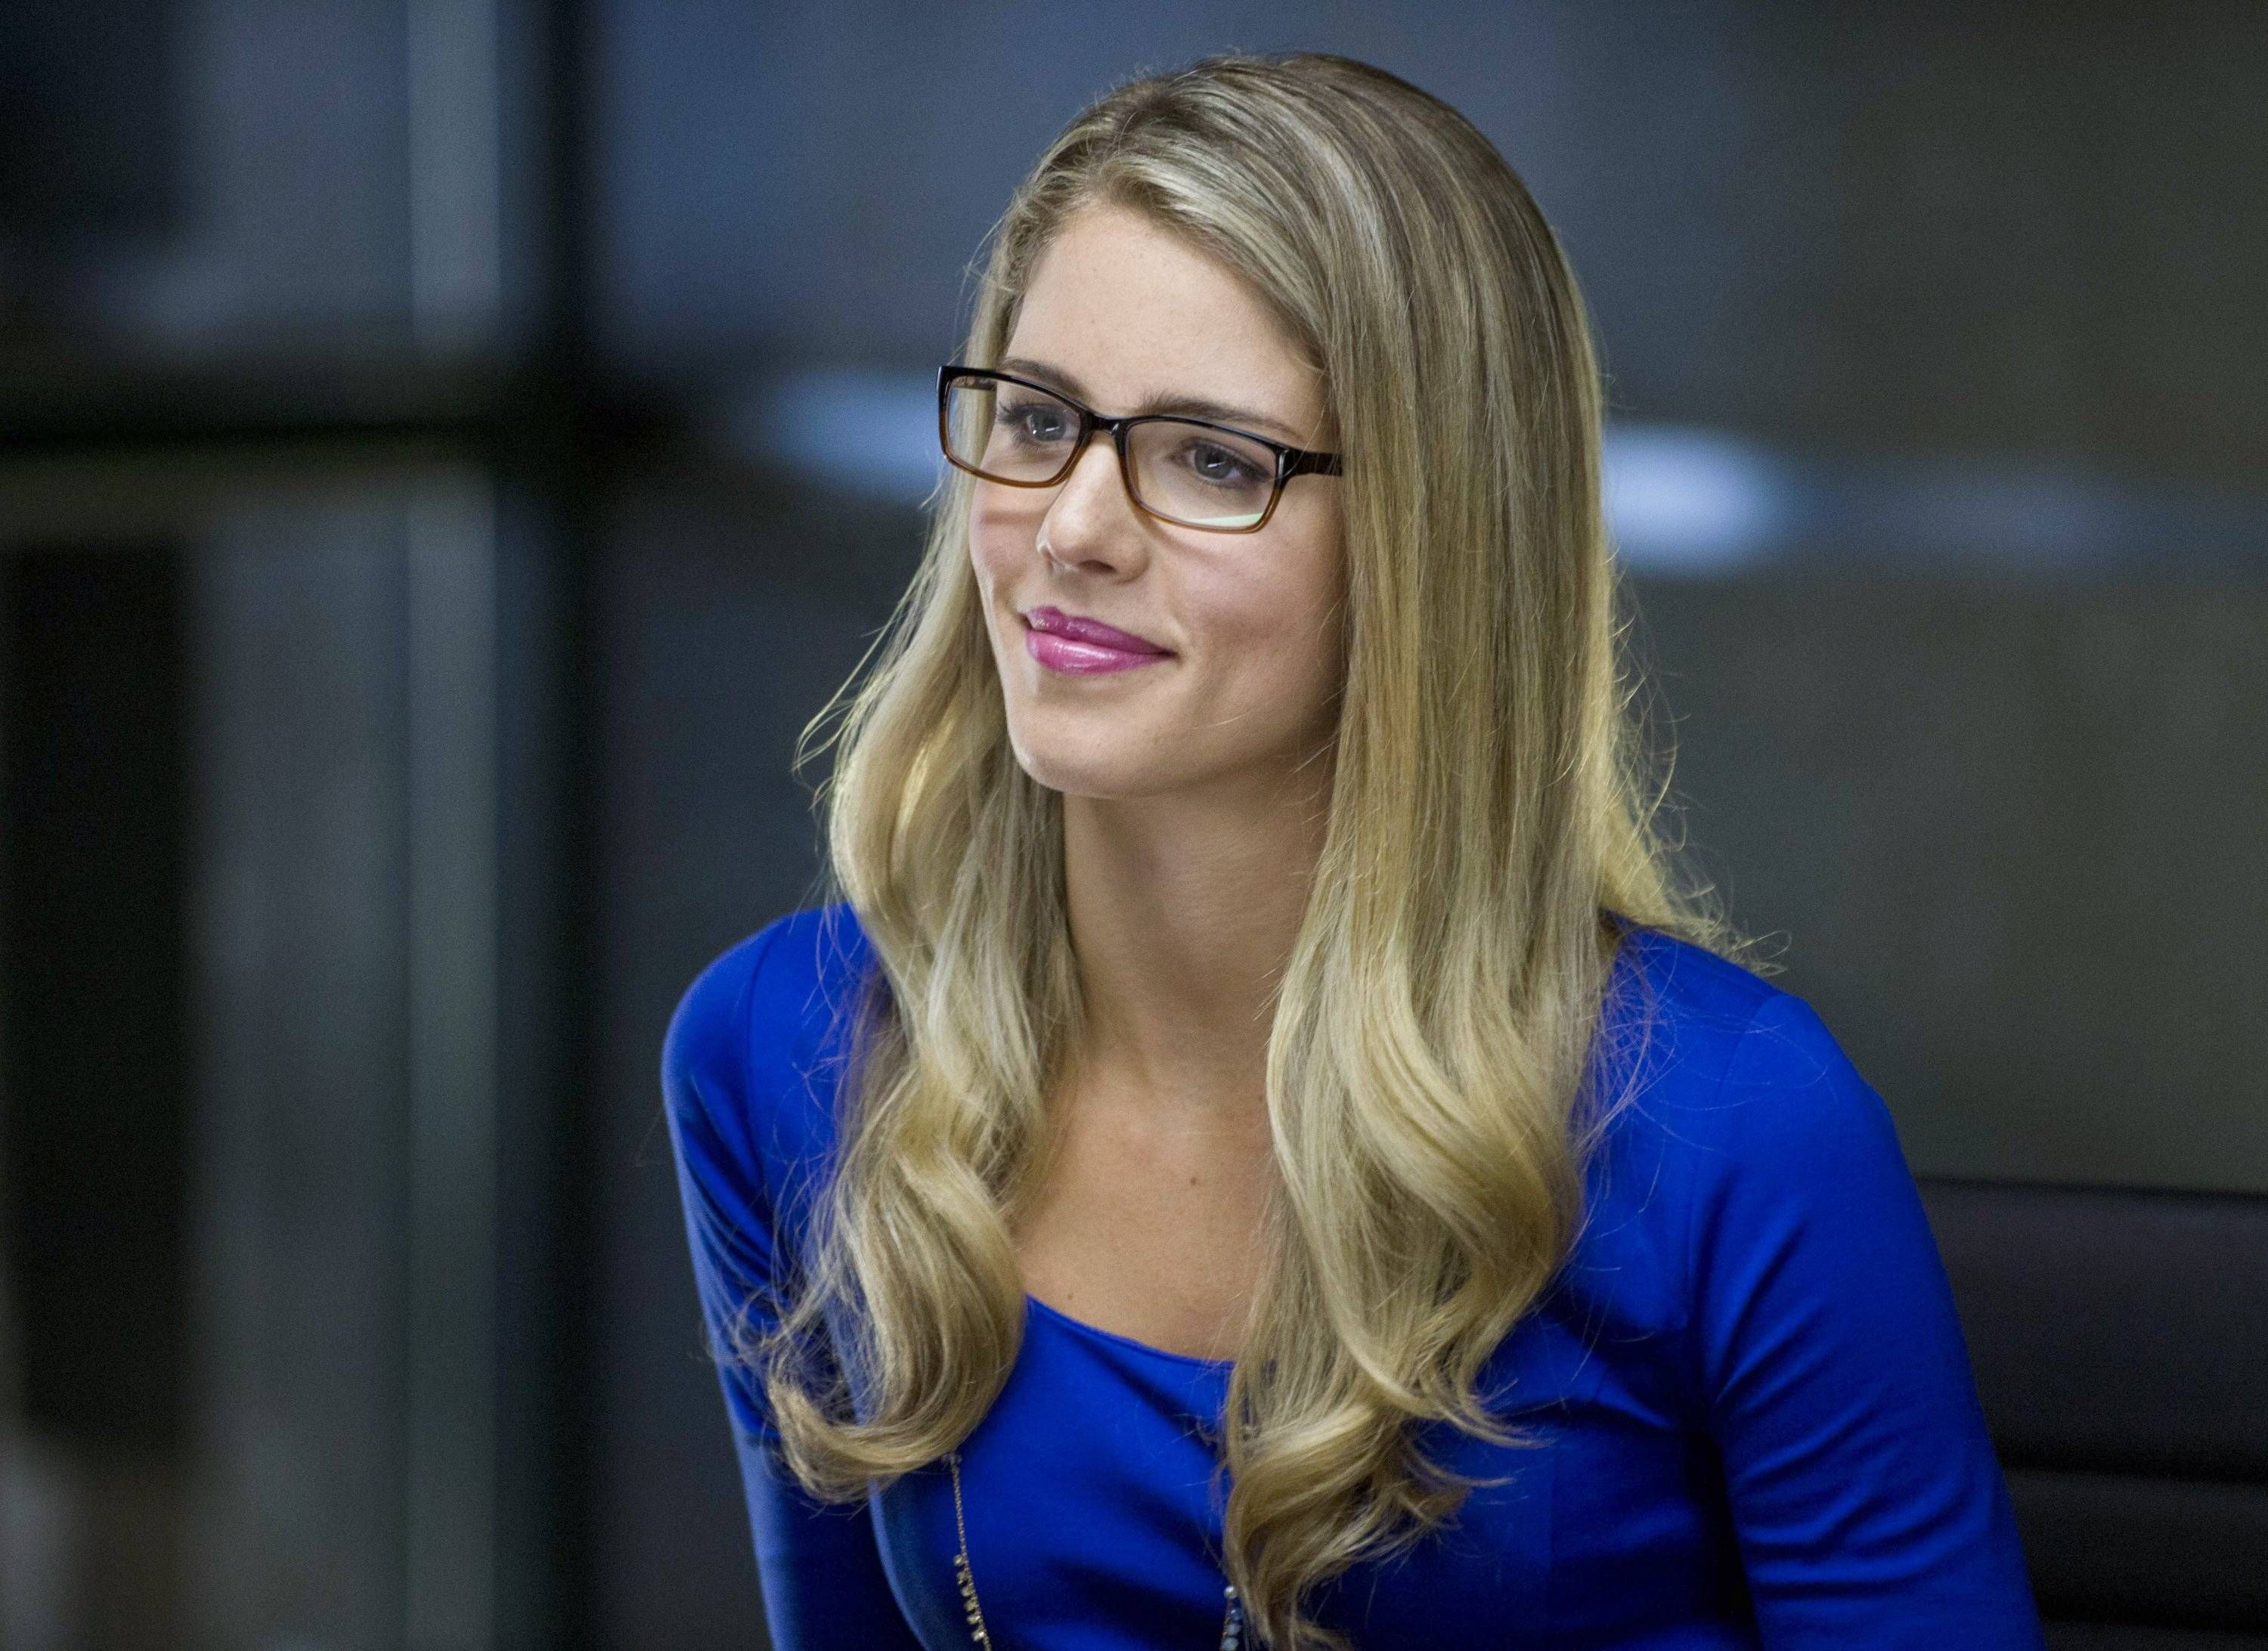 emily bett rickards wallpapers high resolution and quality download